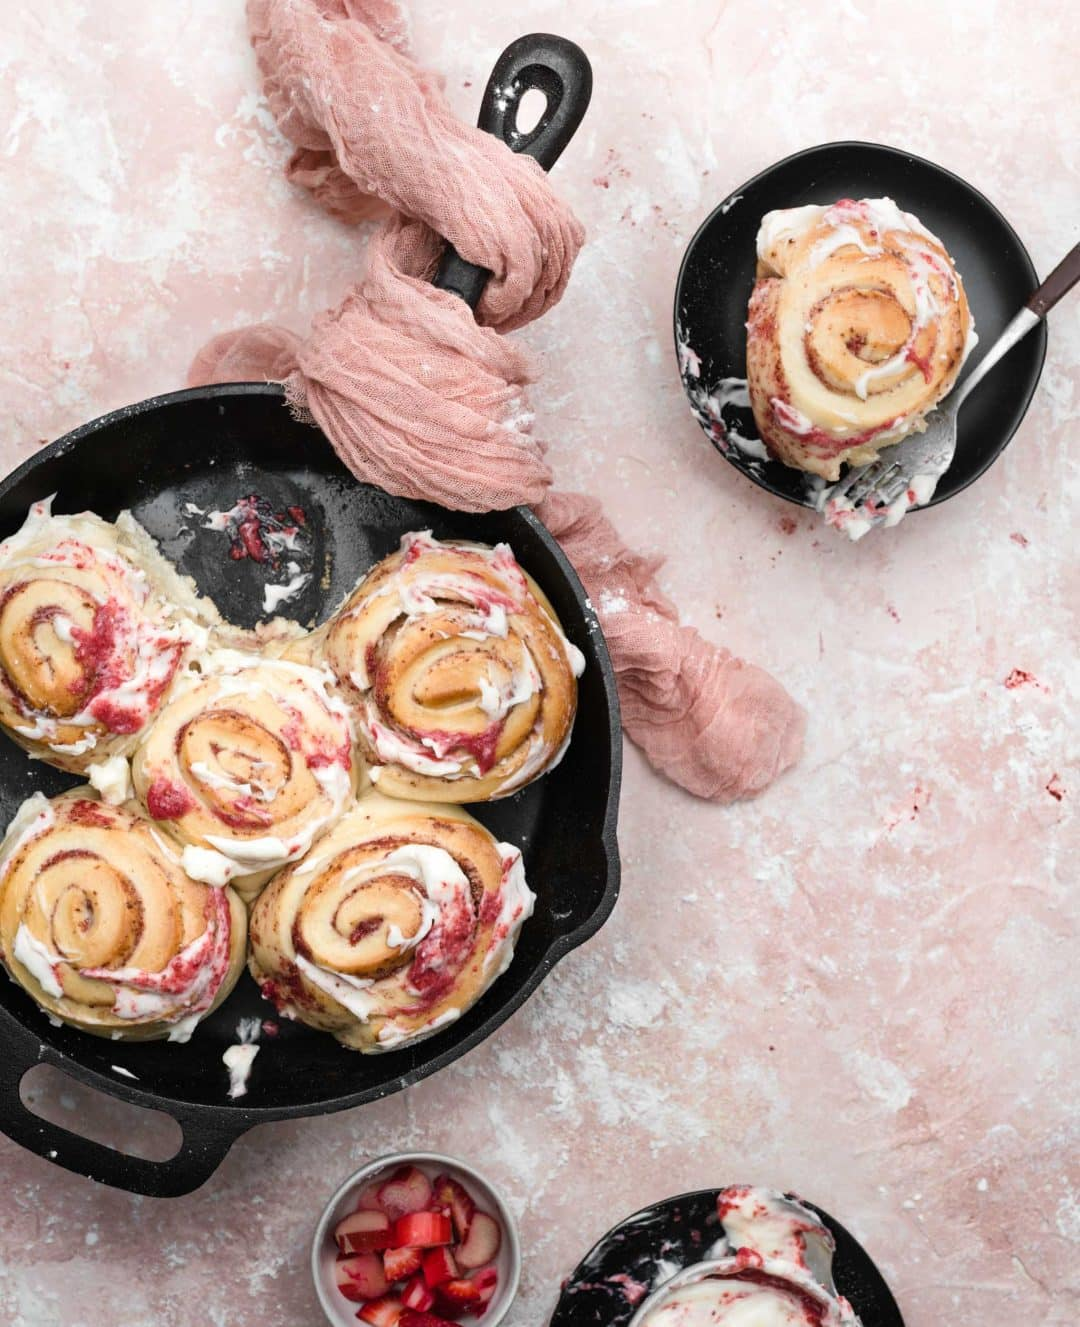 rhubarb rolls with frosting